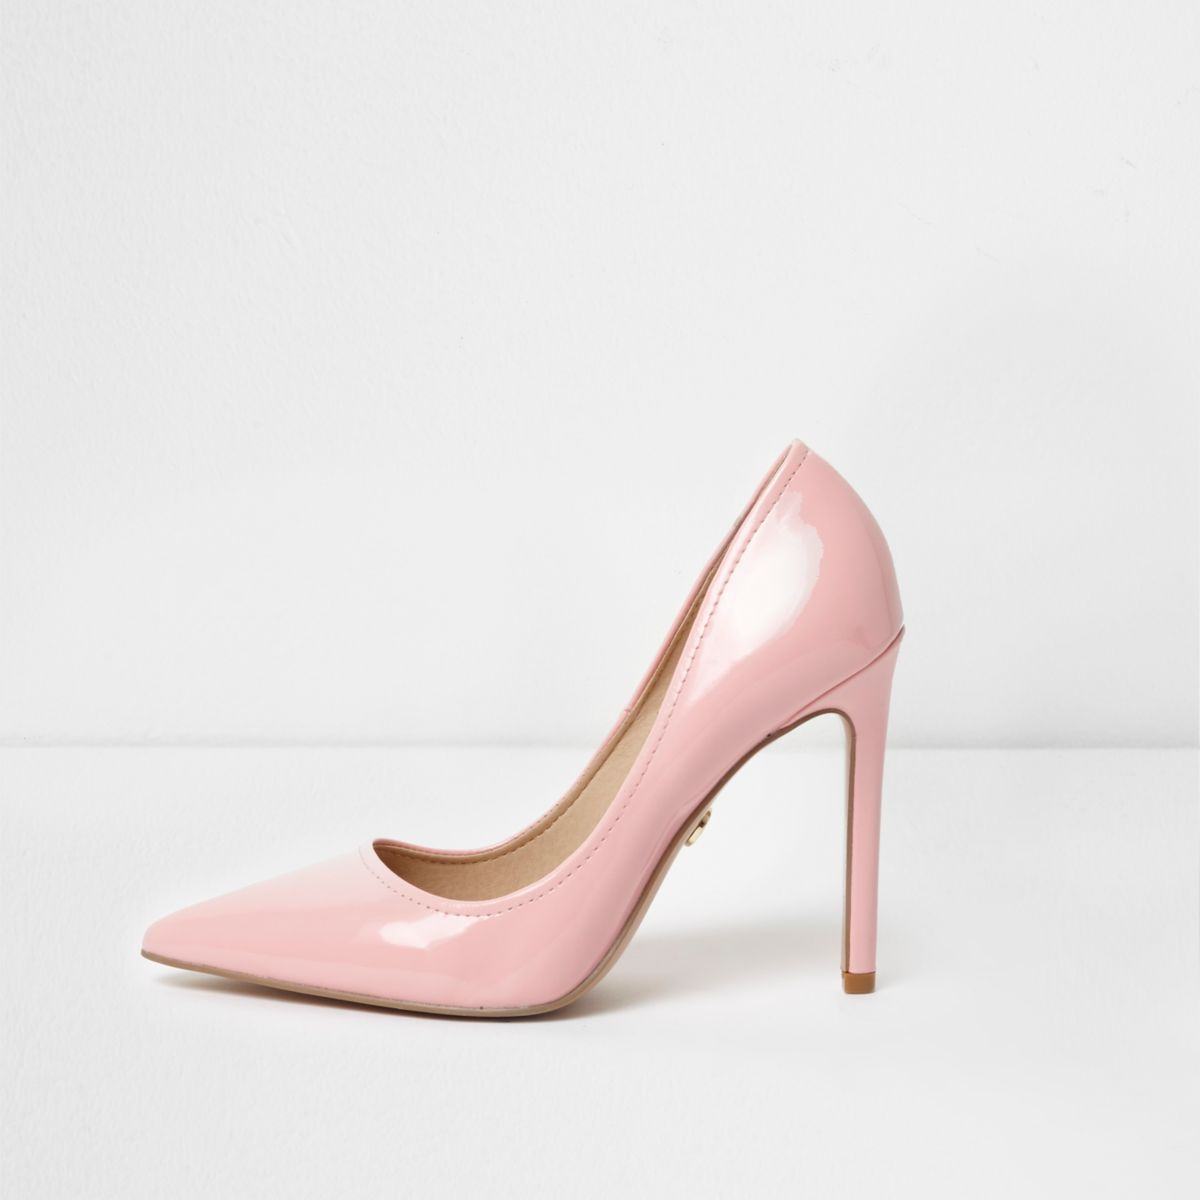 Light pink patent pointed toe pumps - Shoes - Shoes & Boots - women